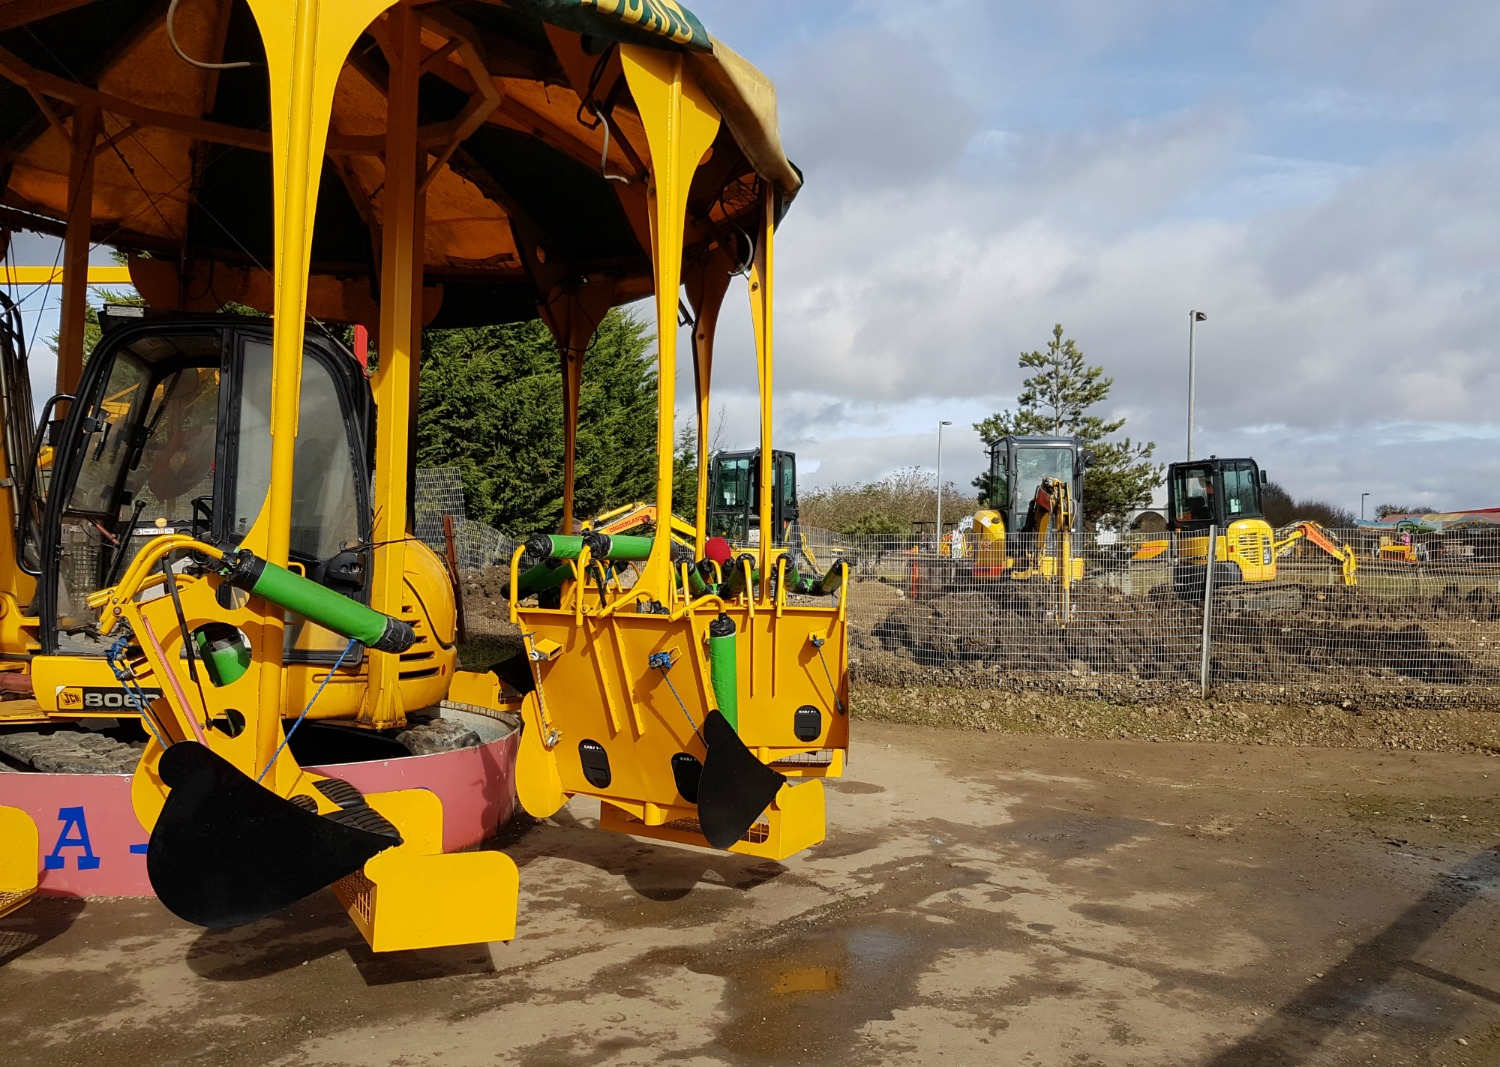 The digger-style carousel at Diggerland Kent - one of the attractions on this family day out